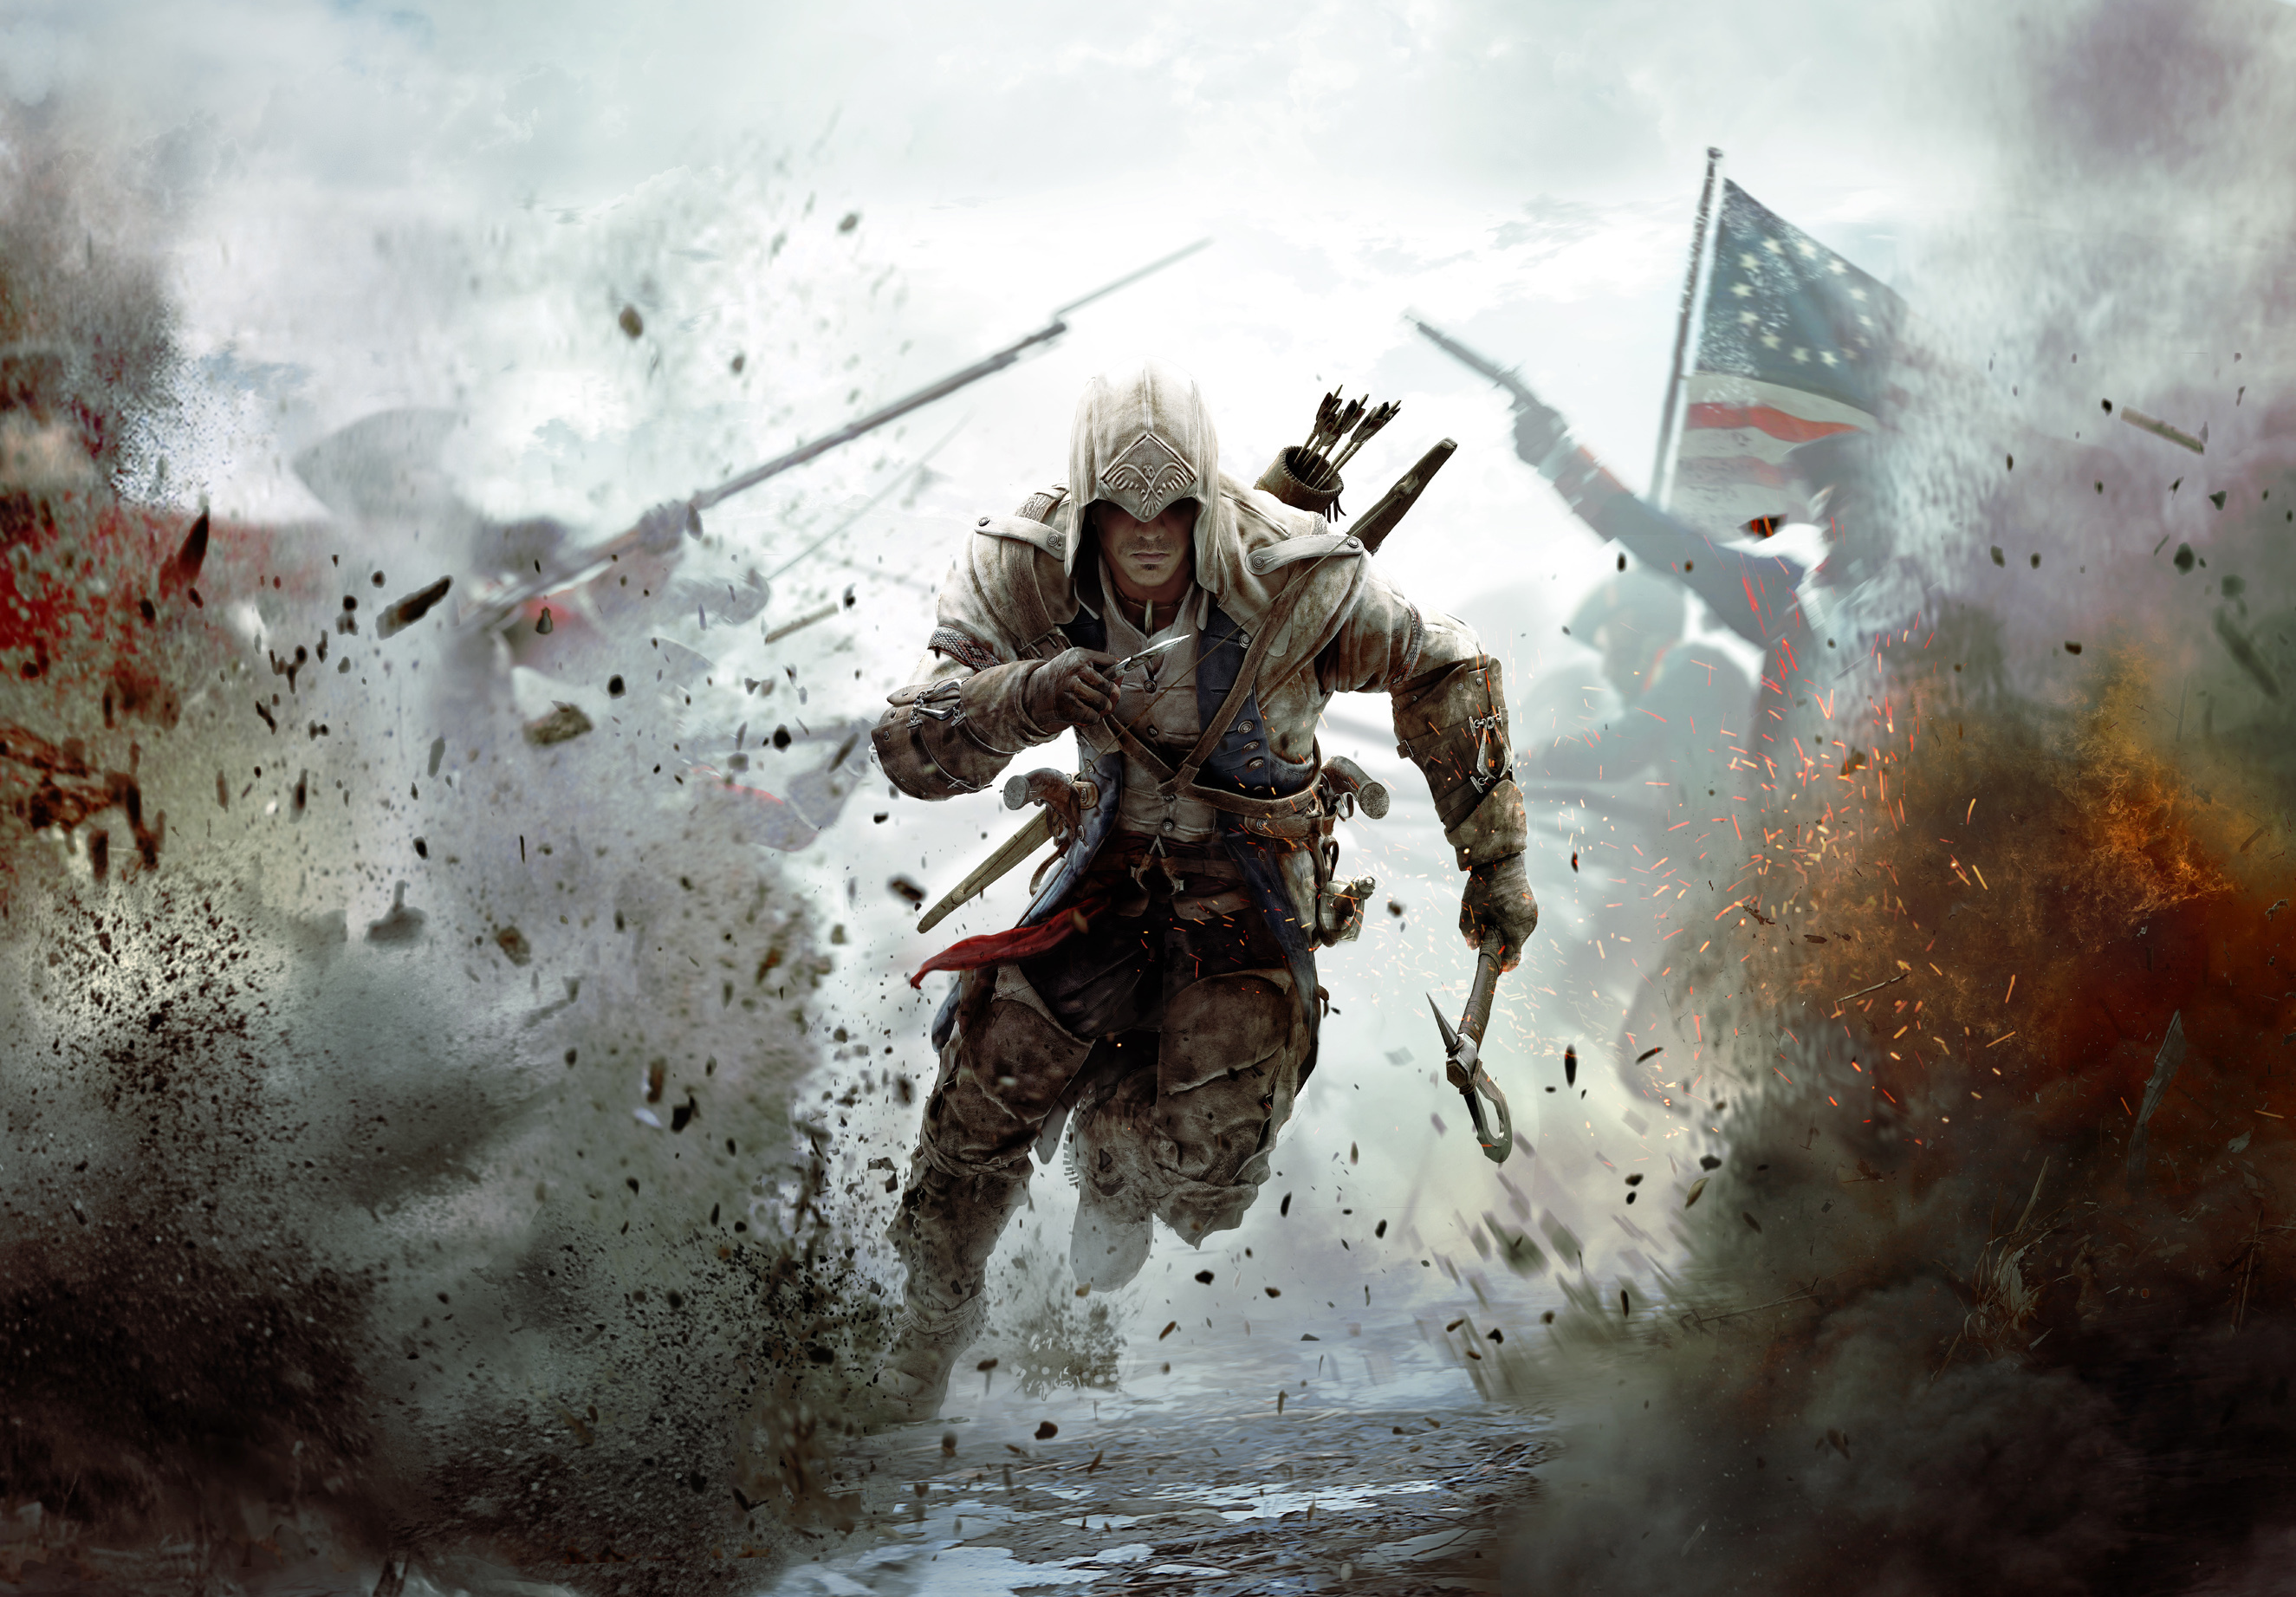 15687 download wallpaper Assassin's Creed, Games, Men screensavers and pictures for free